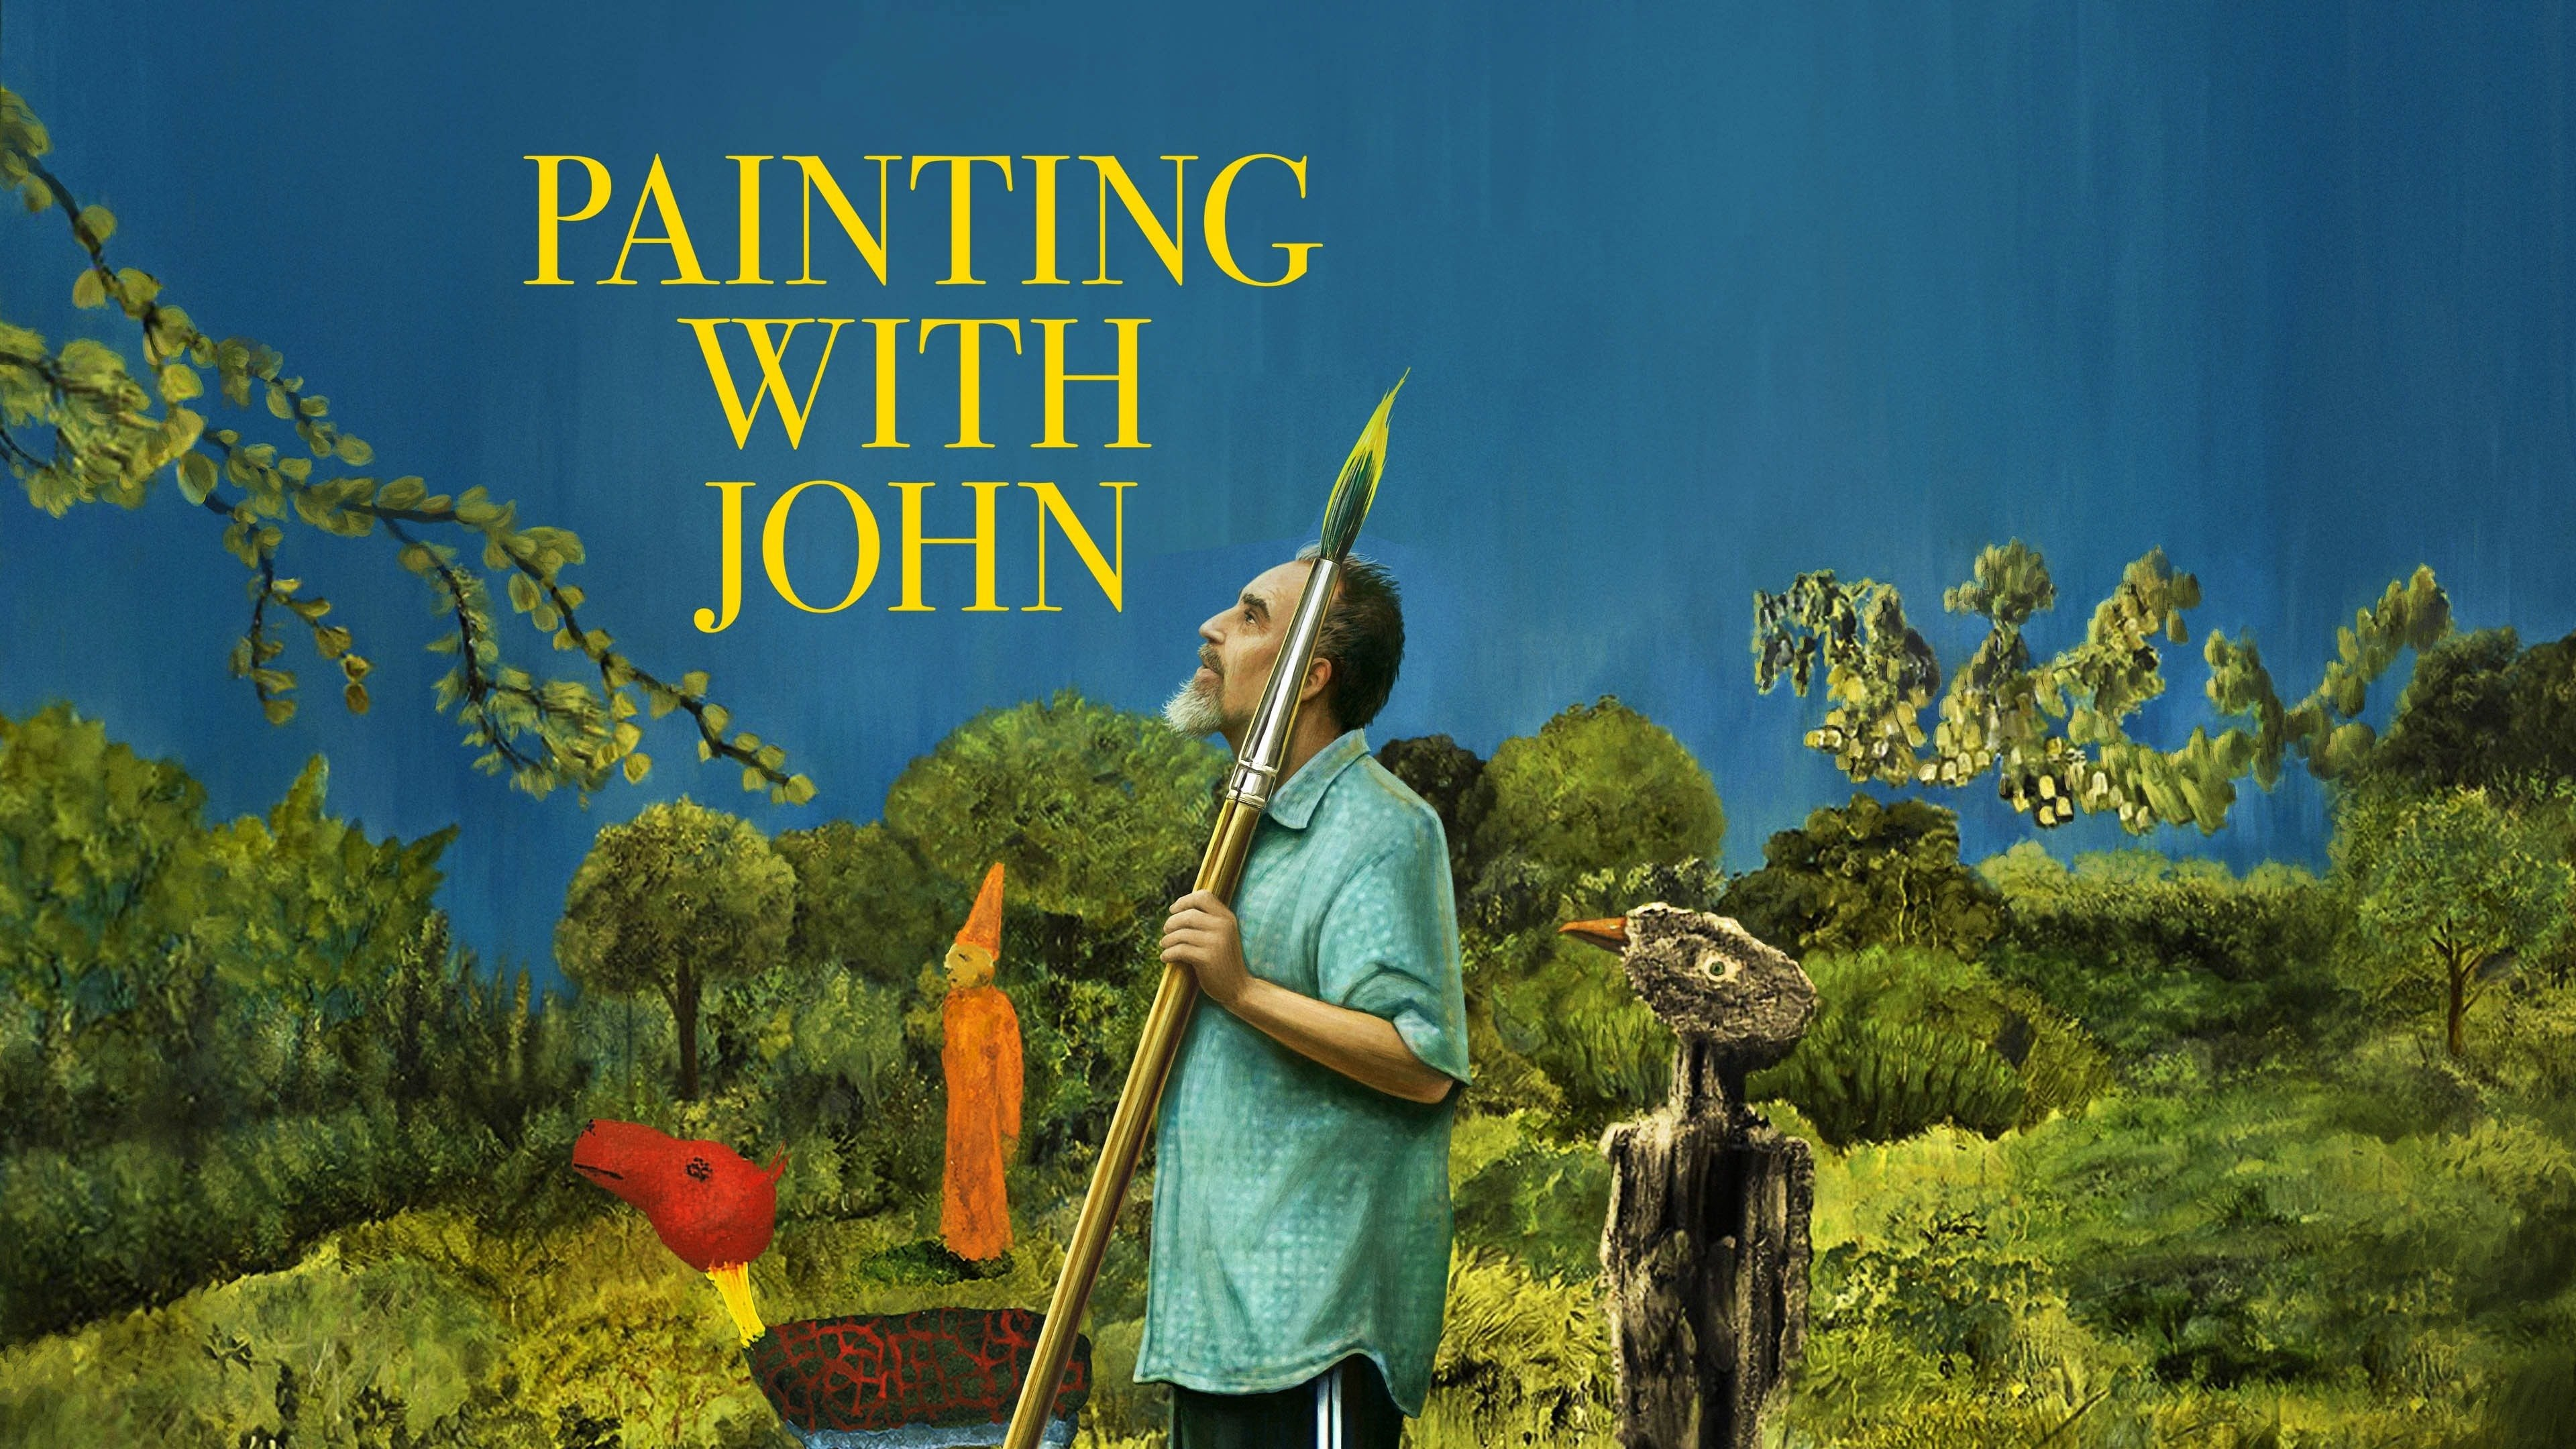 Painting With John